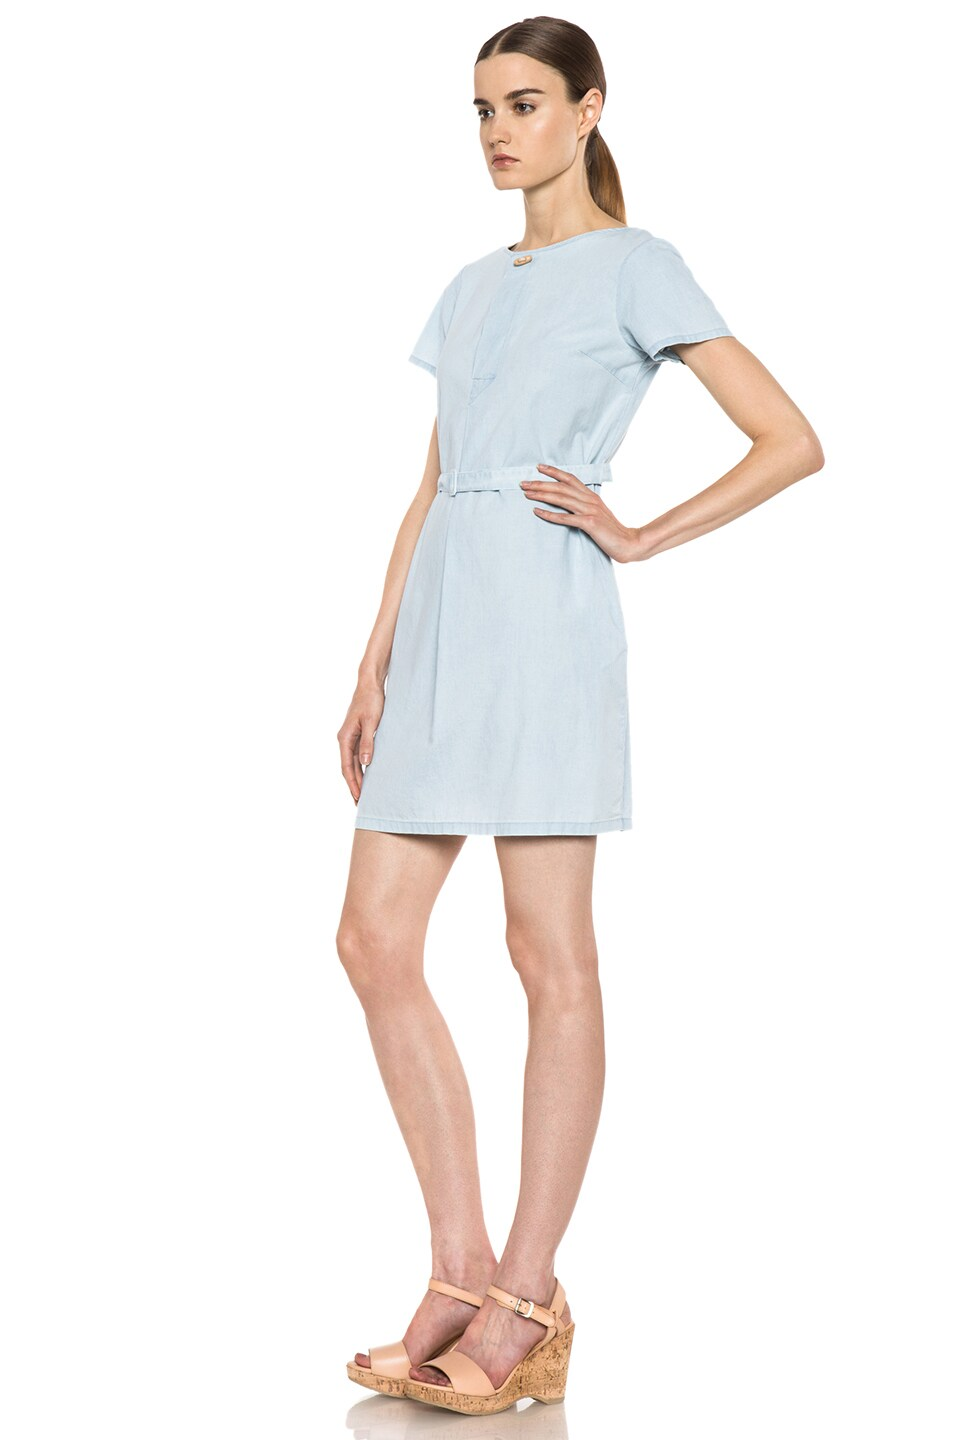 Image 2 of A.P.C. Chambray Dress in Bleu Ciel